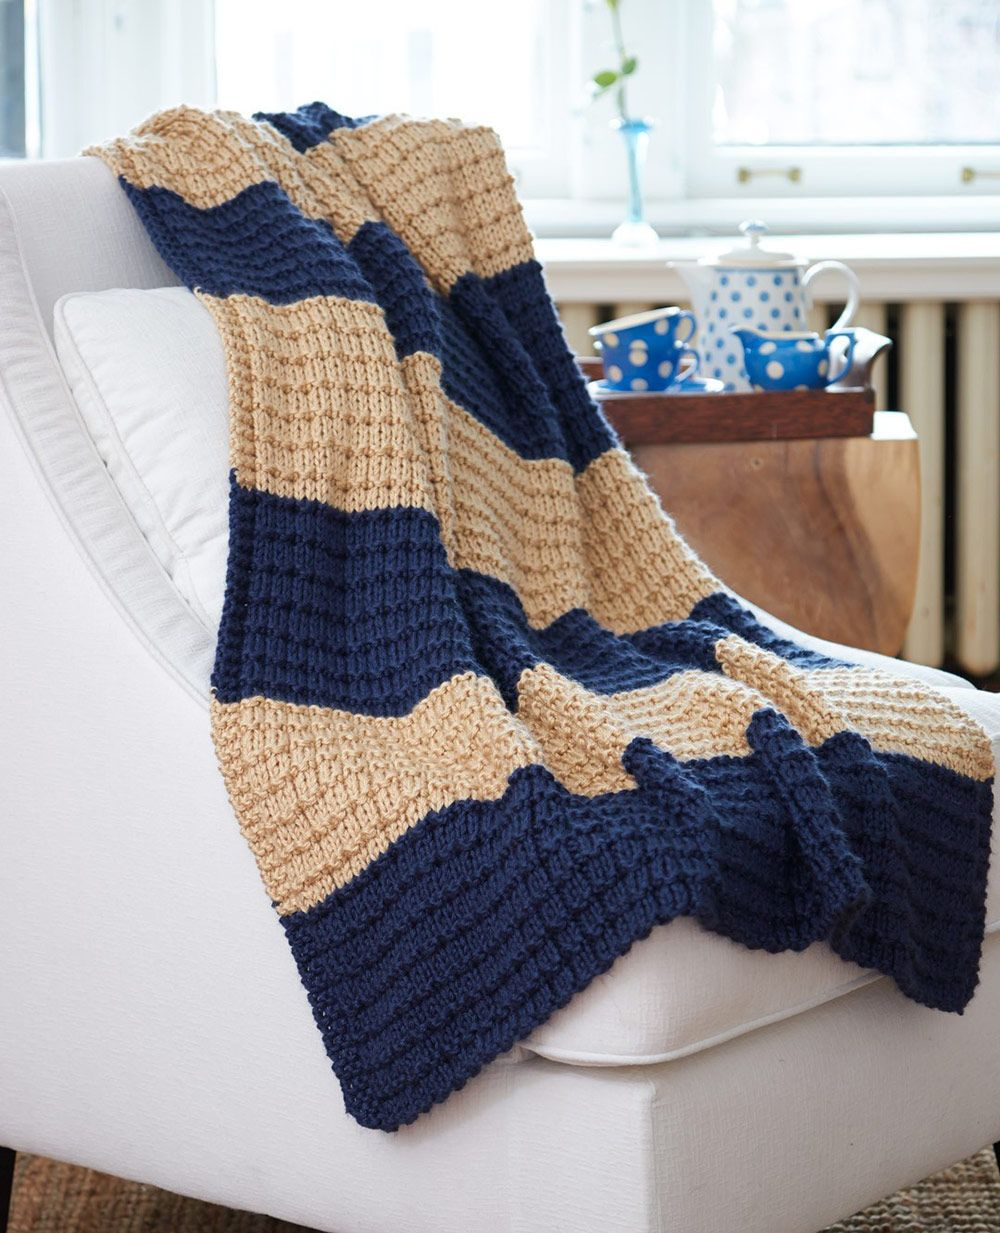 Knitted Afghan Patterns Free Mary Maxim Free Easy Breezy ...